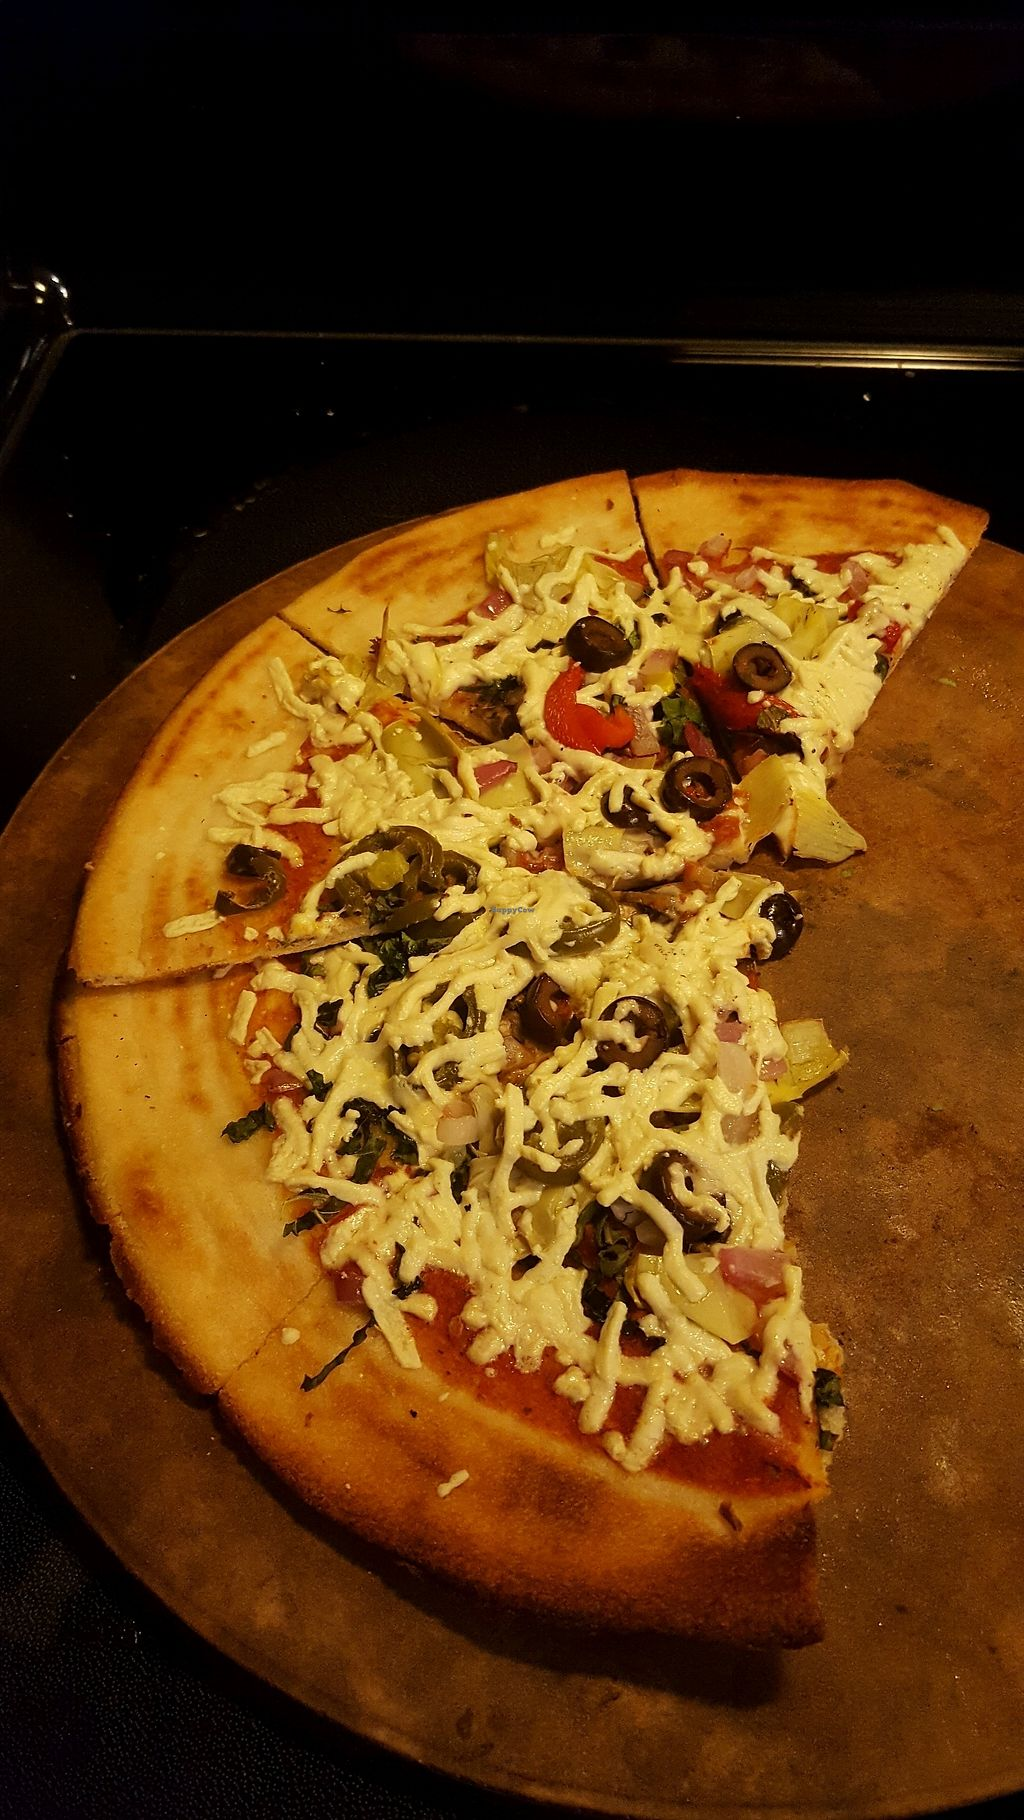 "Photo of Mod Pizza  by <a href=""/members/profile/TerriRubyRedmon"">TerriRubyRedmon</a> <br/>vegan pizza <br/> December 1, 2017  - <a href='/contact/abuse/image/105091/331016'>Report</a>"